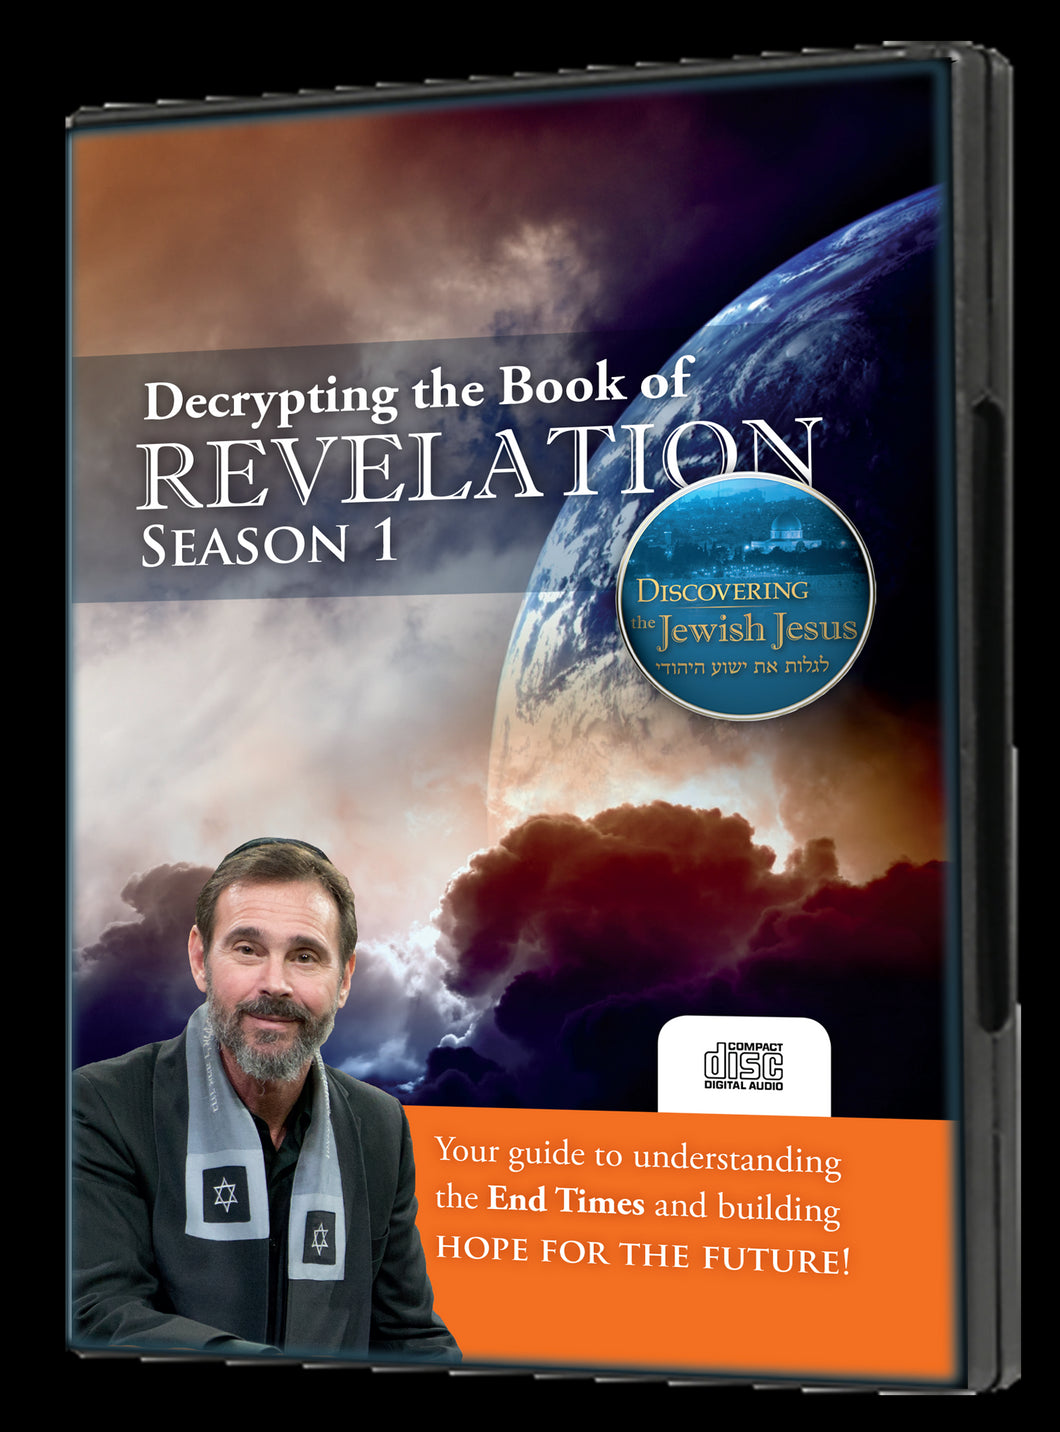 Decrypting the Book of Revelation Season 1